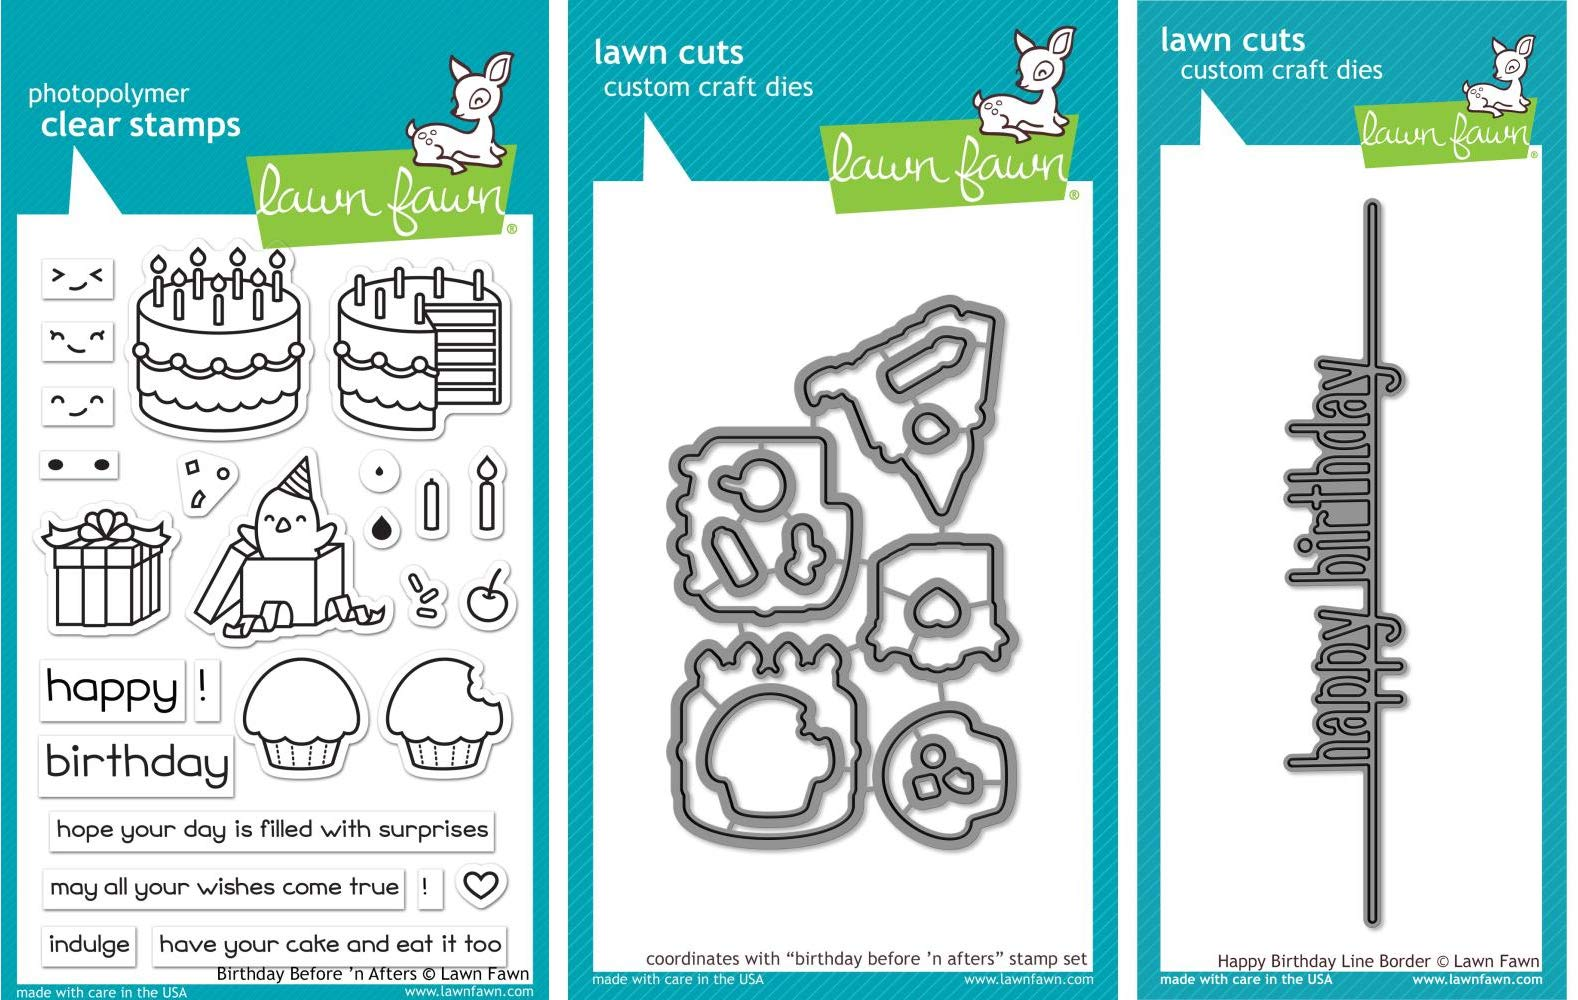 Lawn Fawn - Birthday Changer Bundle - Birthday Before 'n After Clear Stamp and Die Sets with Happy Birthday Line Border Die - 3 Items